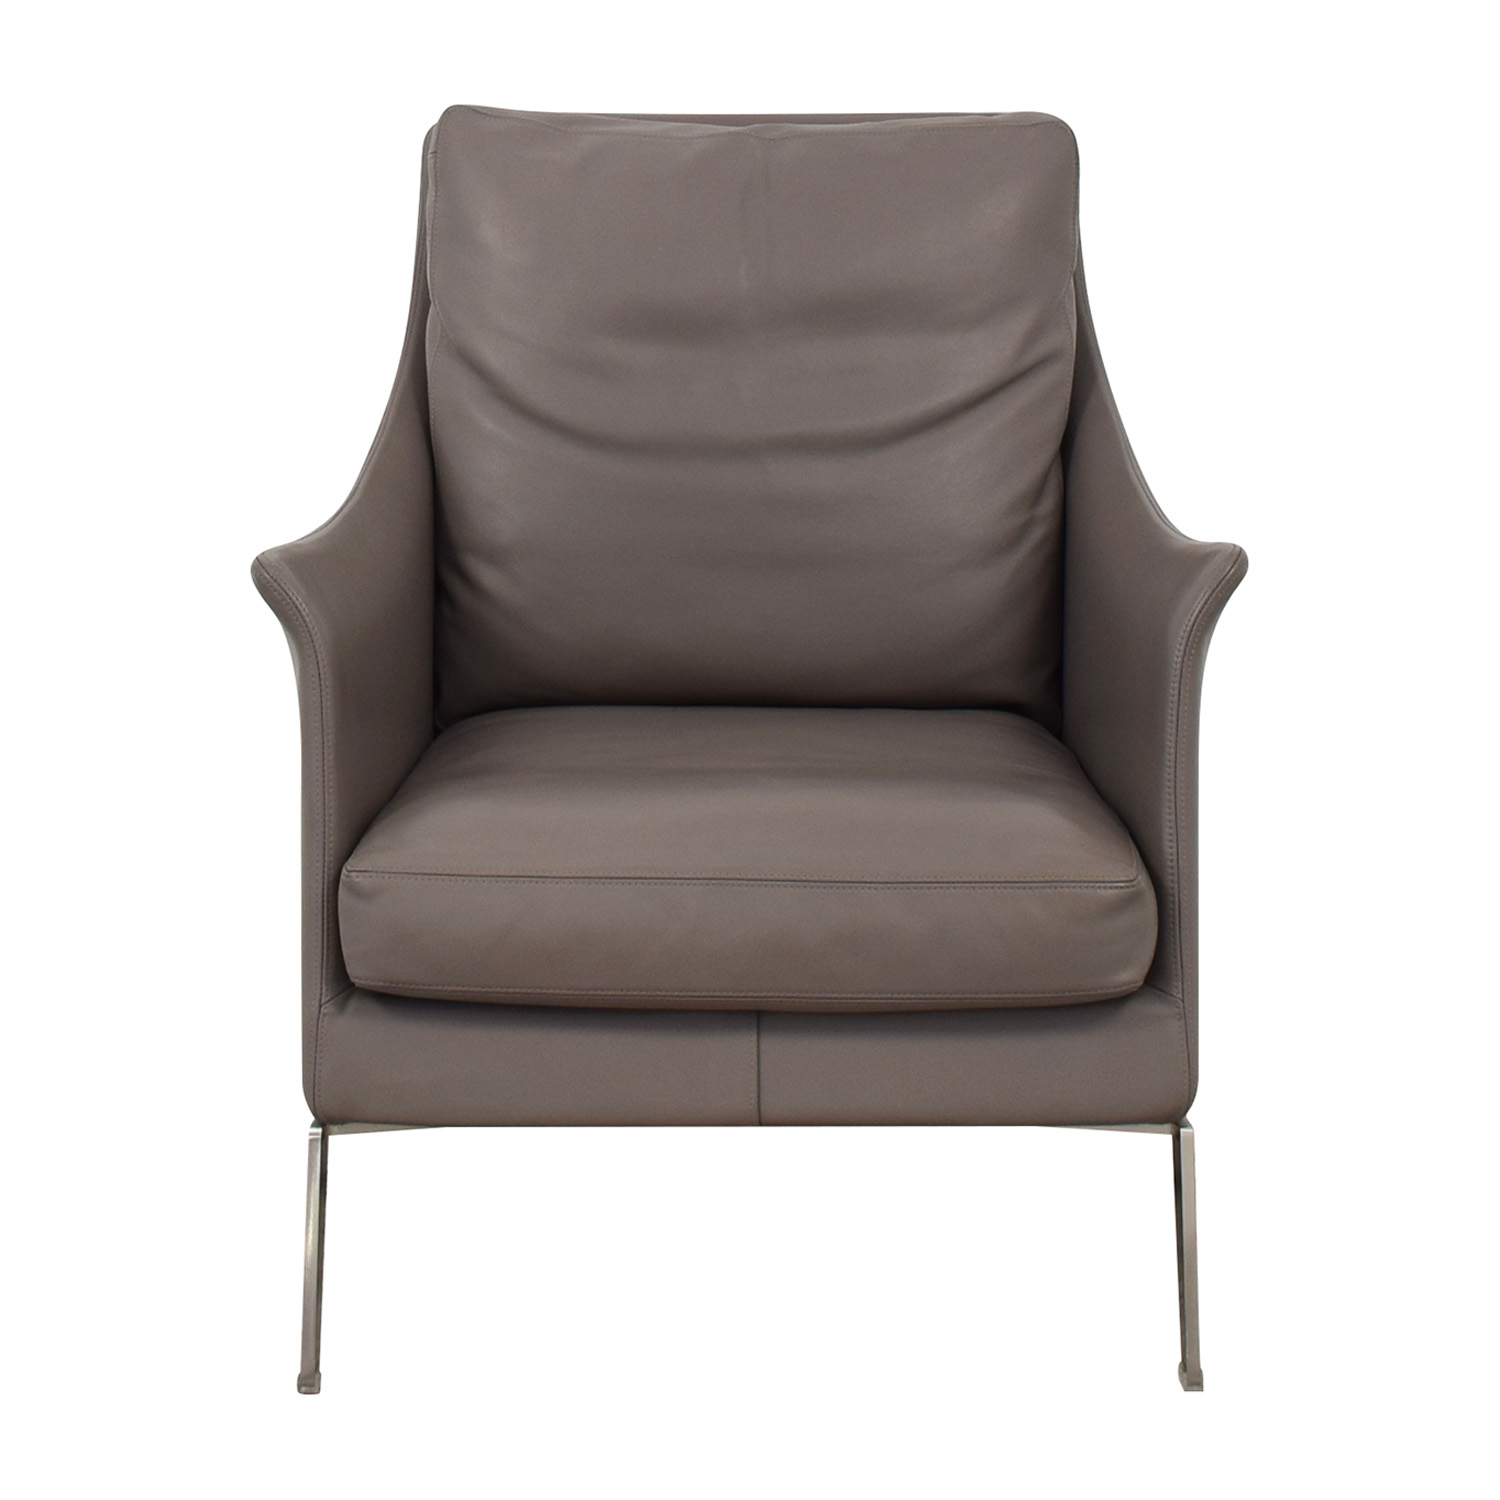 Flexform Boss Armchair sale